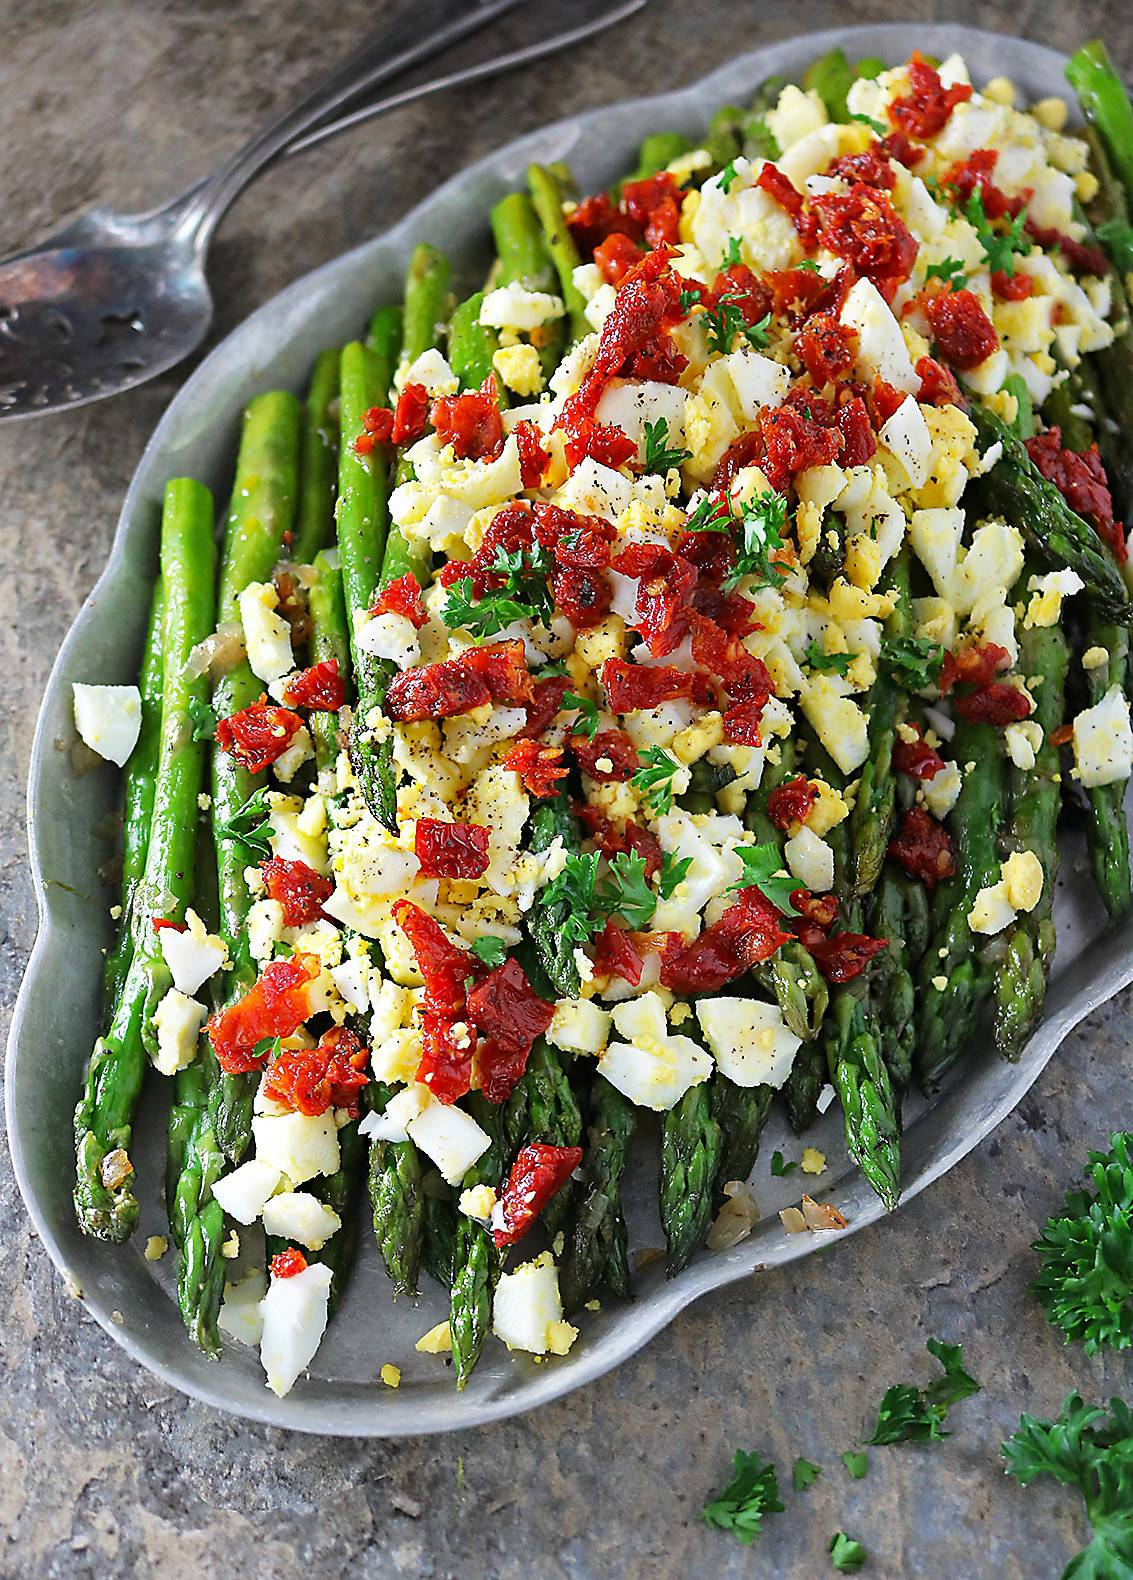 Sauteed Asparagus topped with boiled egg and sundried tomatoes on a silver platter